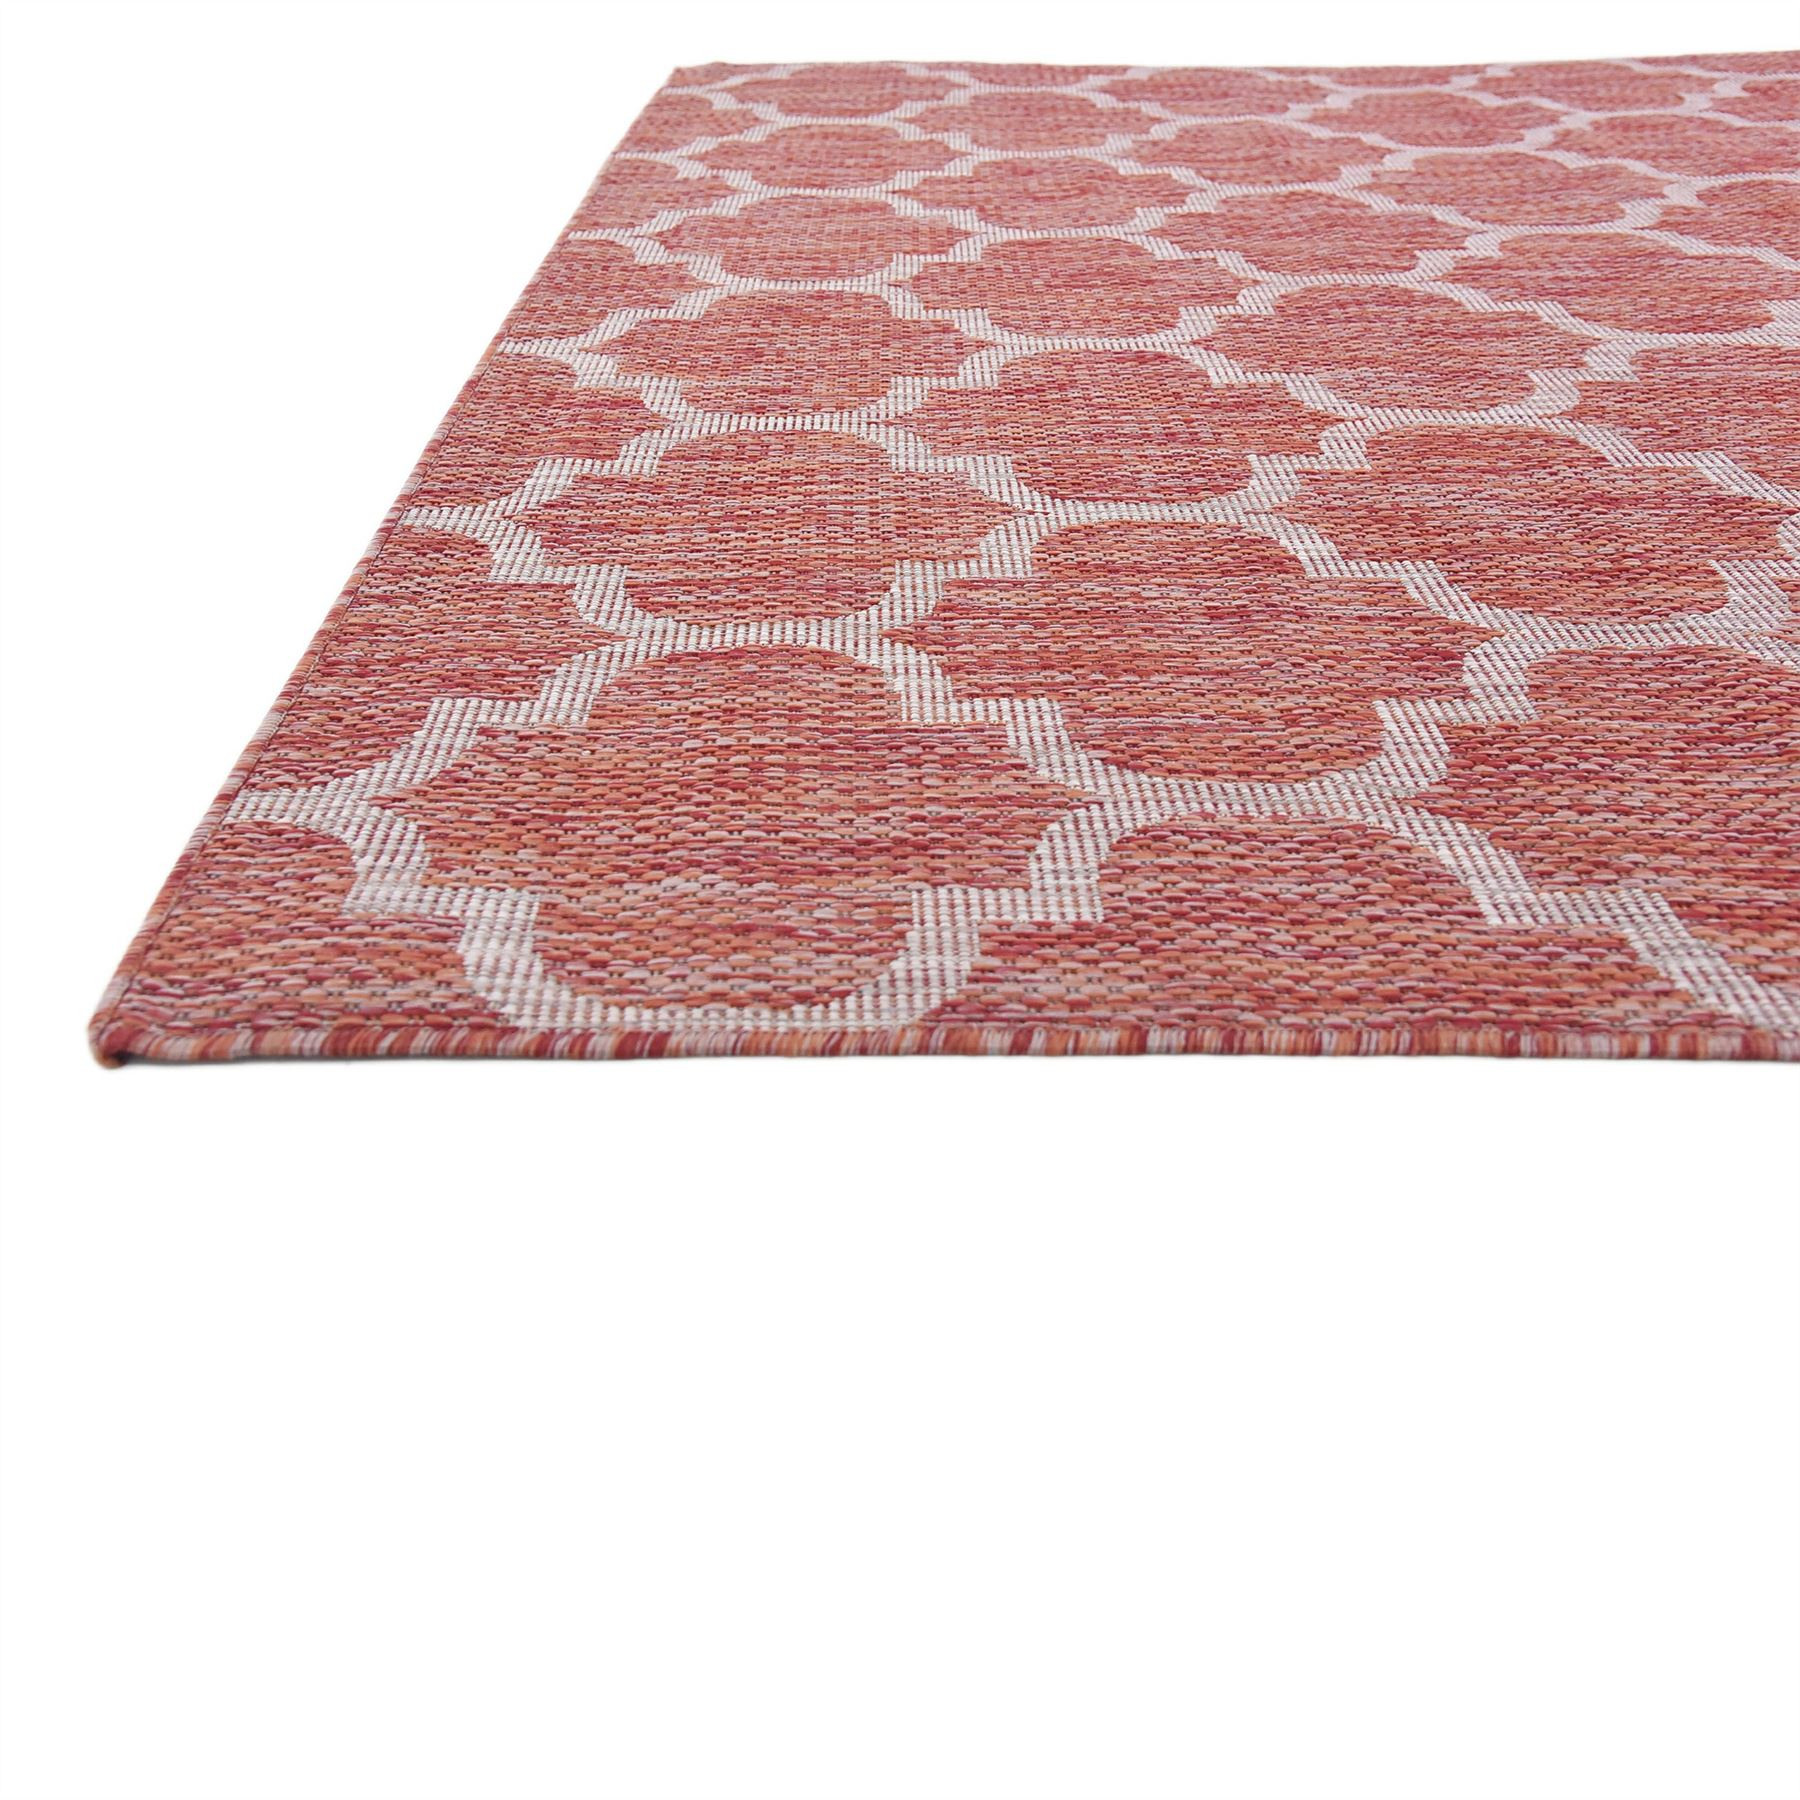 Outdoor Rug 7 X 10: 7' 0 X 10' 0 Rust Red Outdoor Trellis Area Rugs Modern